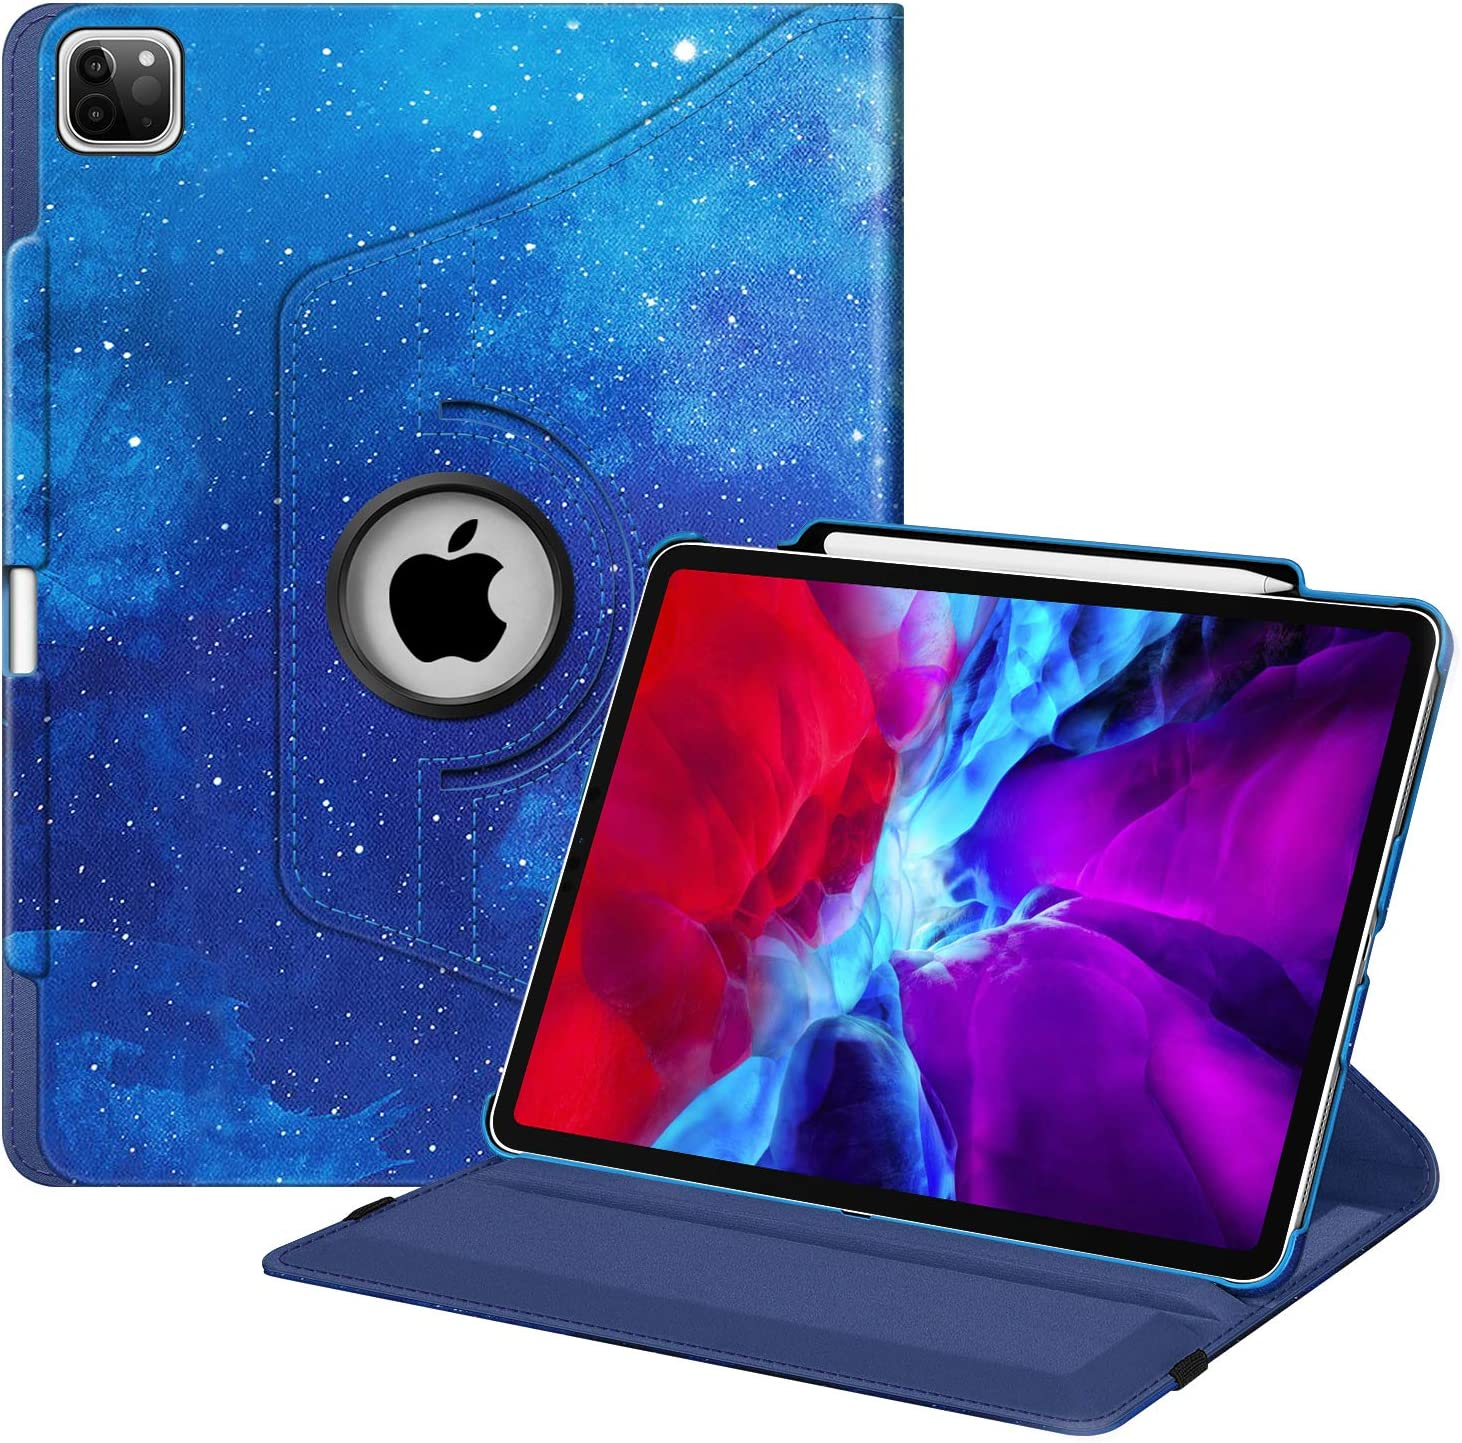 Fintie Rotating Case for iPad Pro 12.9 4th Generation 2020 & 3rd Gen 2018-360 Degree Rotating Smart Stand Cover w/Pencil Holder, Auto Sleep/Wake, Supports 2nd Gen Pencil Charging, Starry Sky